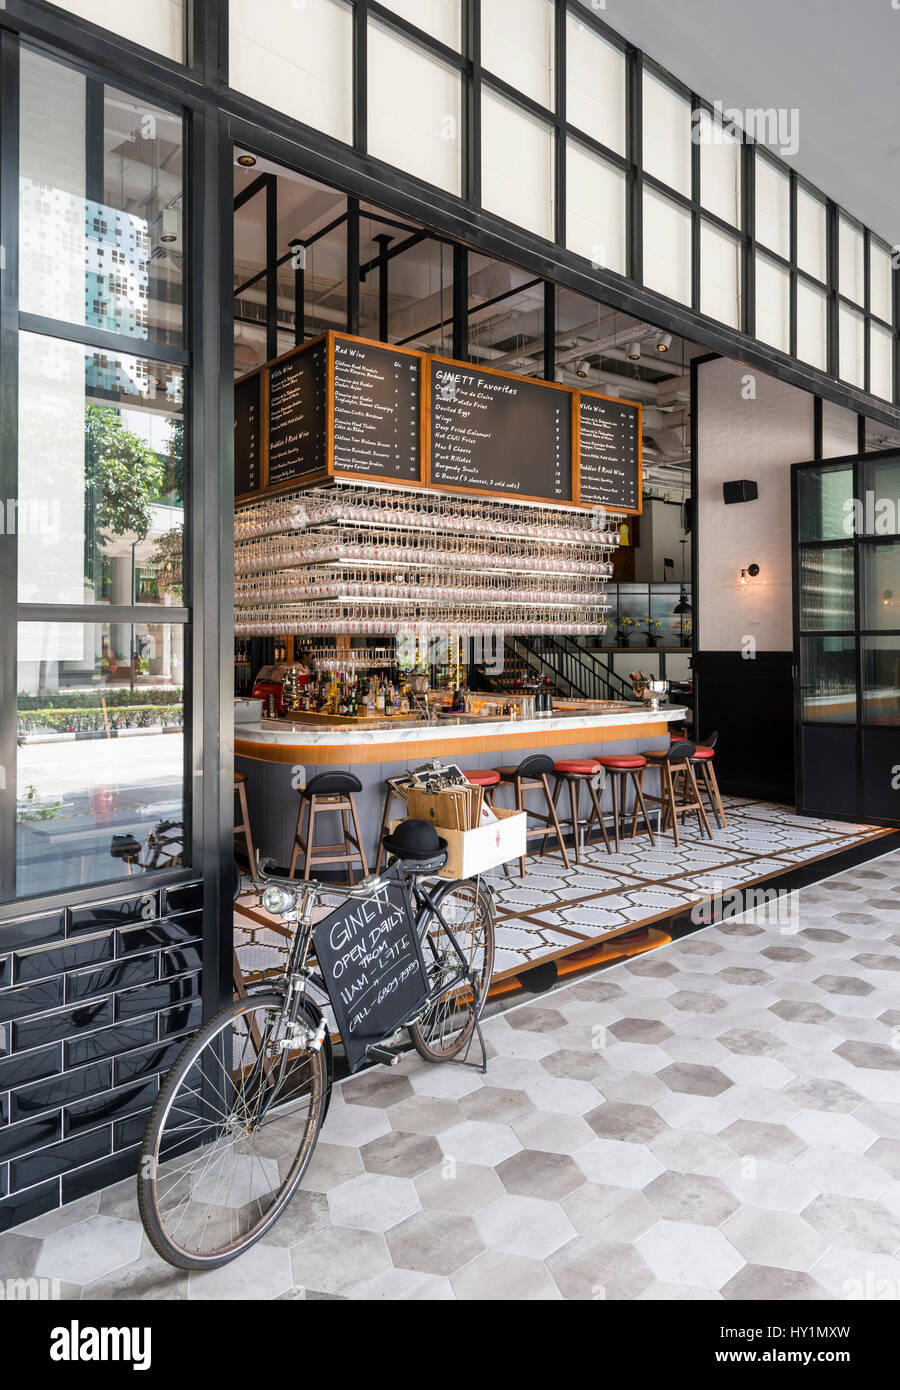 Ginett Restaurant and Wine Bar on the ground floor of Hotel G, Middle Rd, Singapore - Stock Image